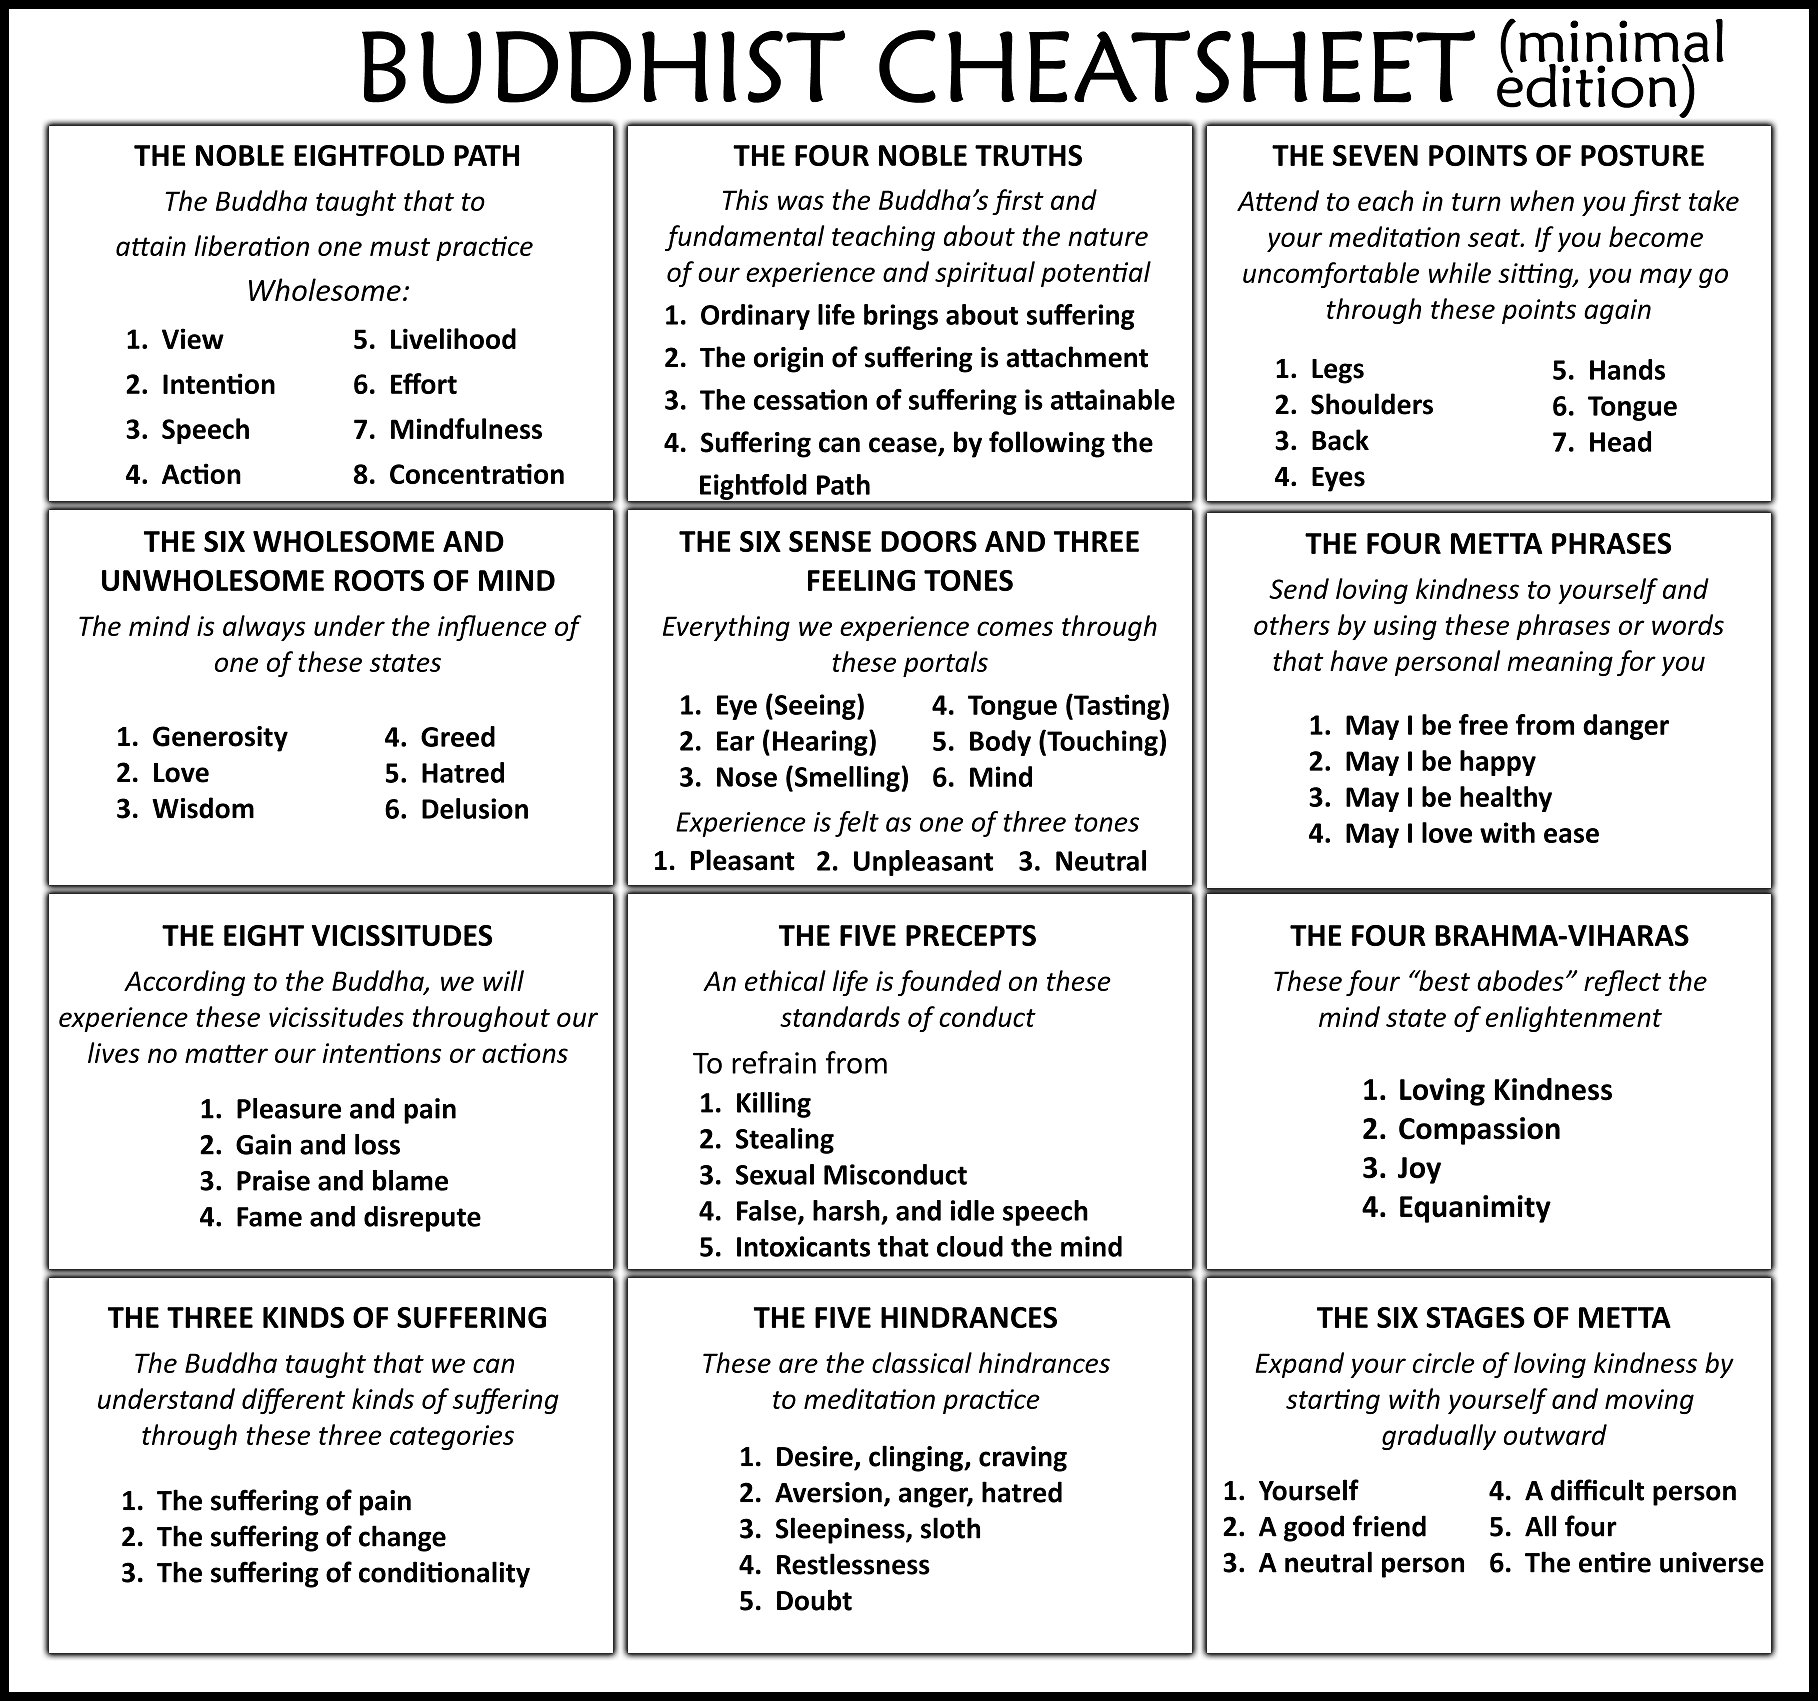 stages of enlightenment in buddhism The four stages of enlightenment in buddhism are the four degrees of approach to full enlightenment as an arahant which a person can attain in this life.